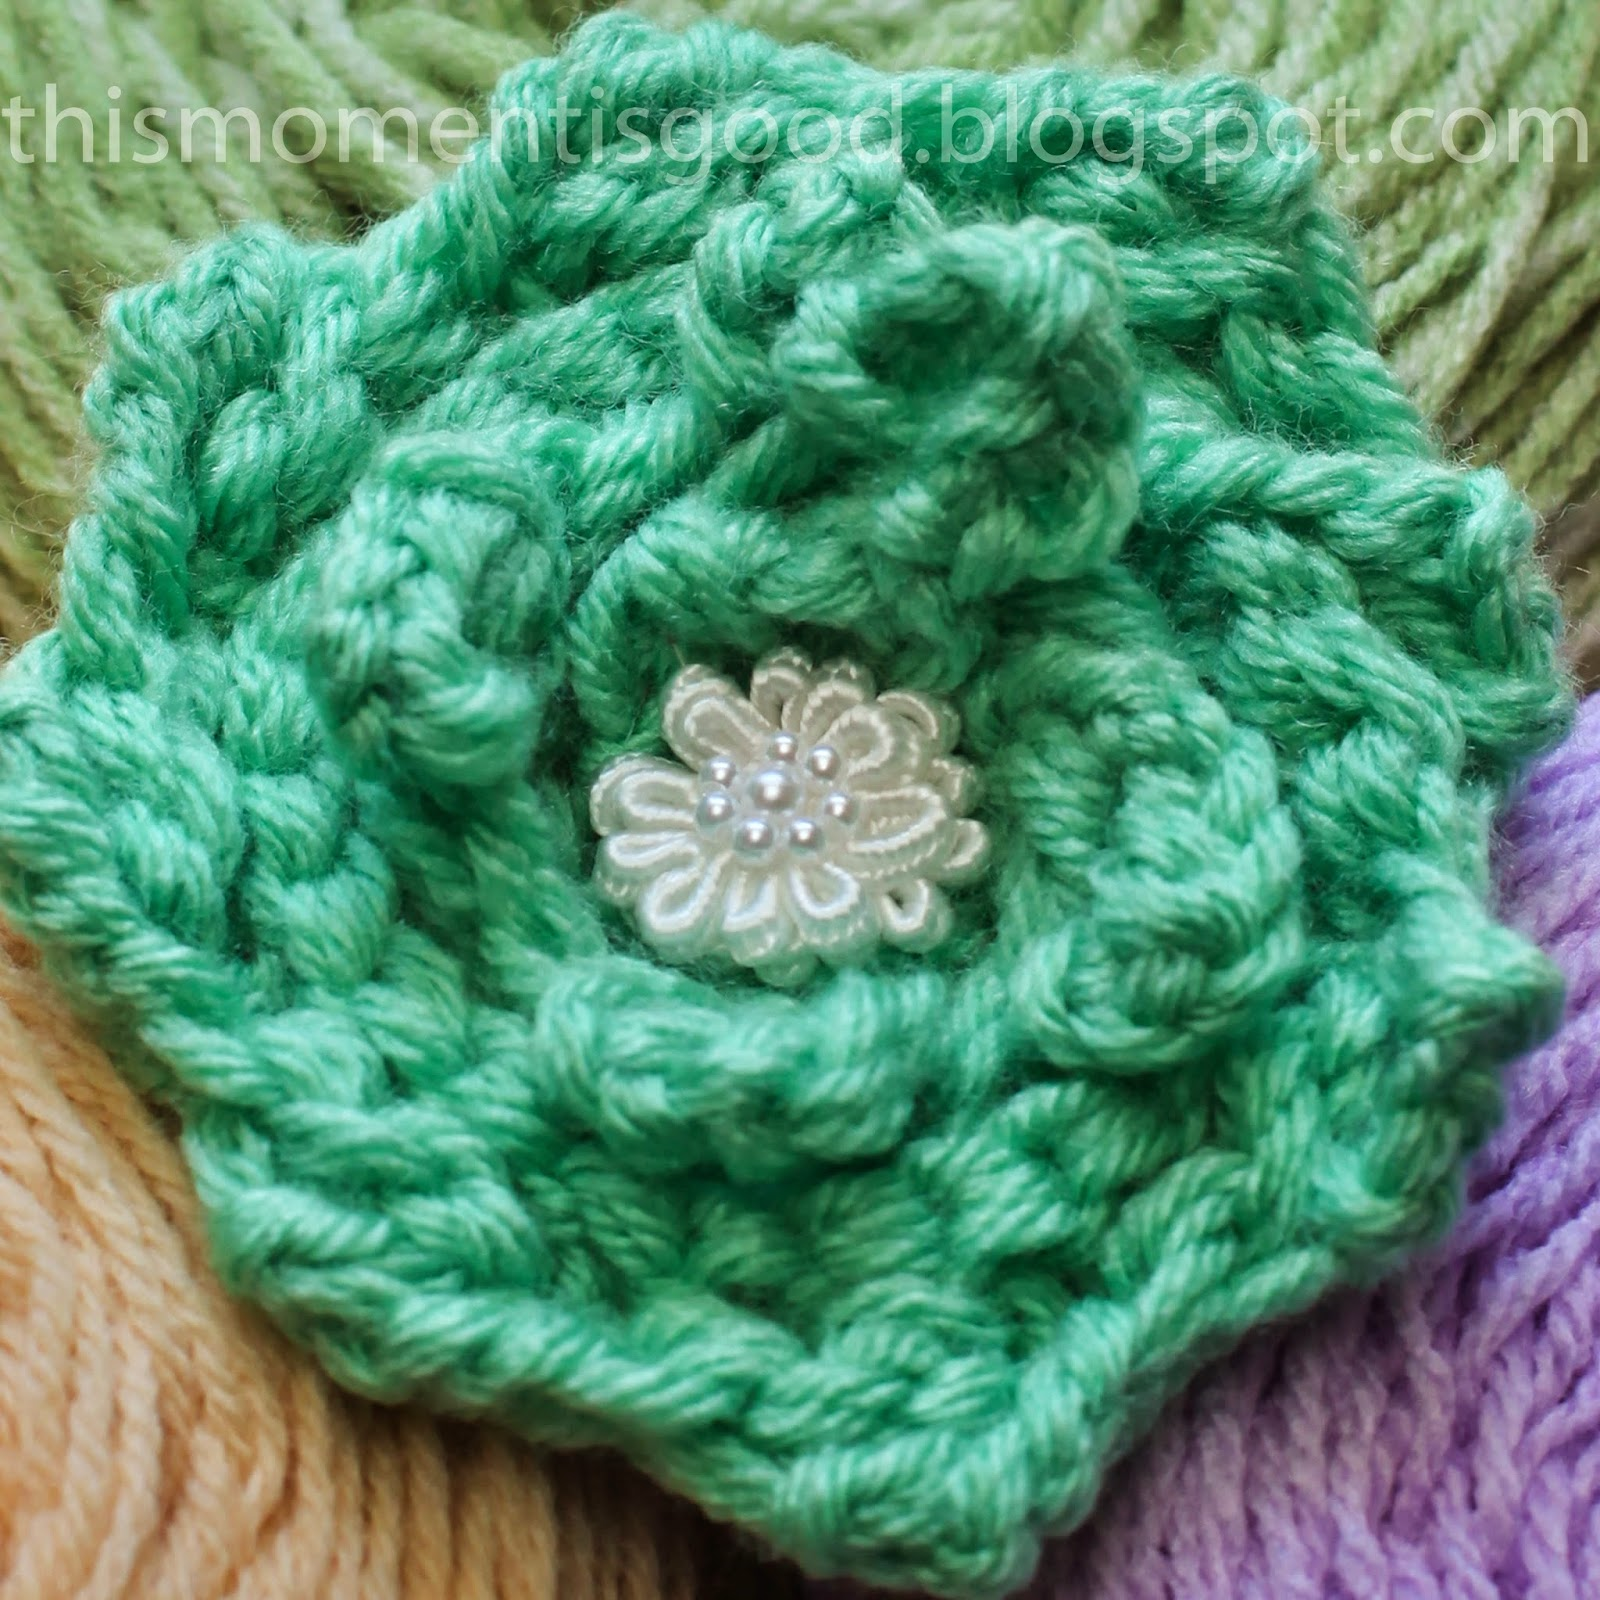 Knitting Rose Pattern : Loom knitting by this moment is good knit rose pattern